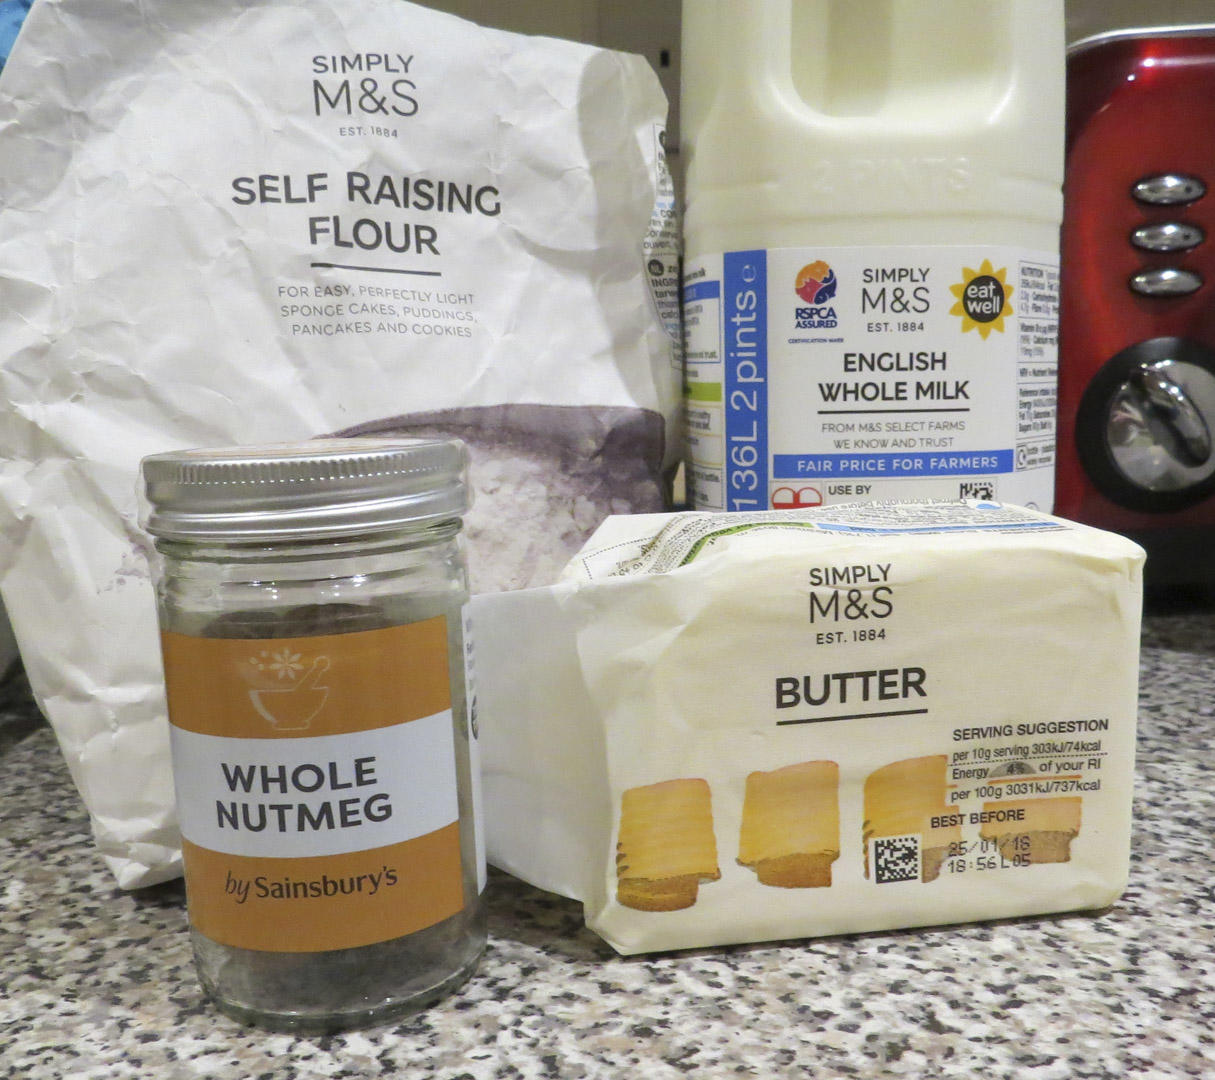 Ingredients for a béchamel sauce - self raising flour, nutmeg, butter and milk.